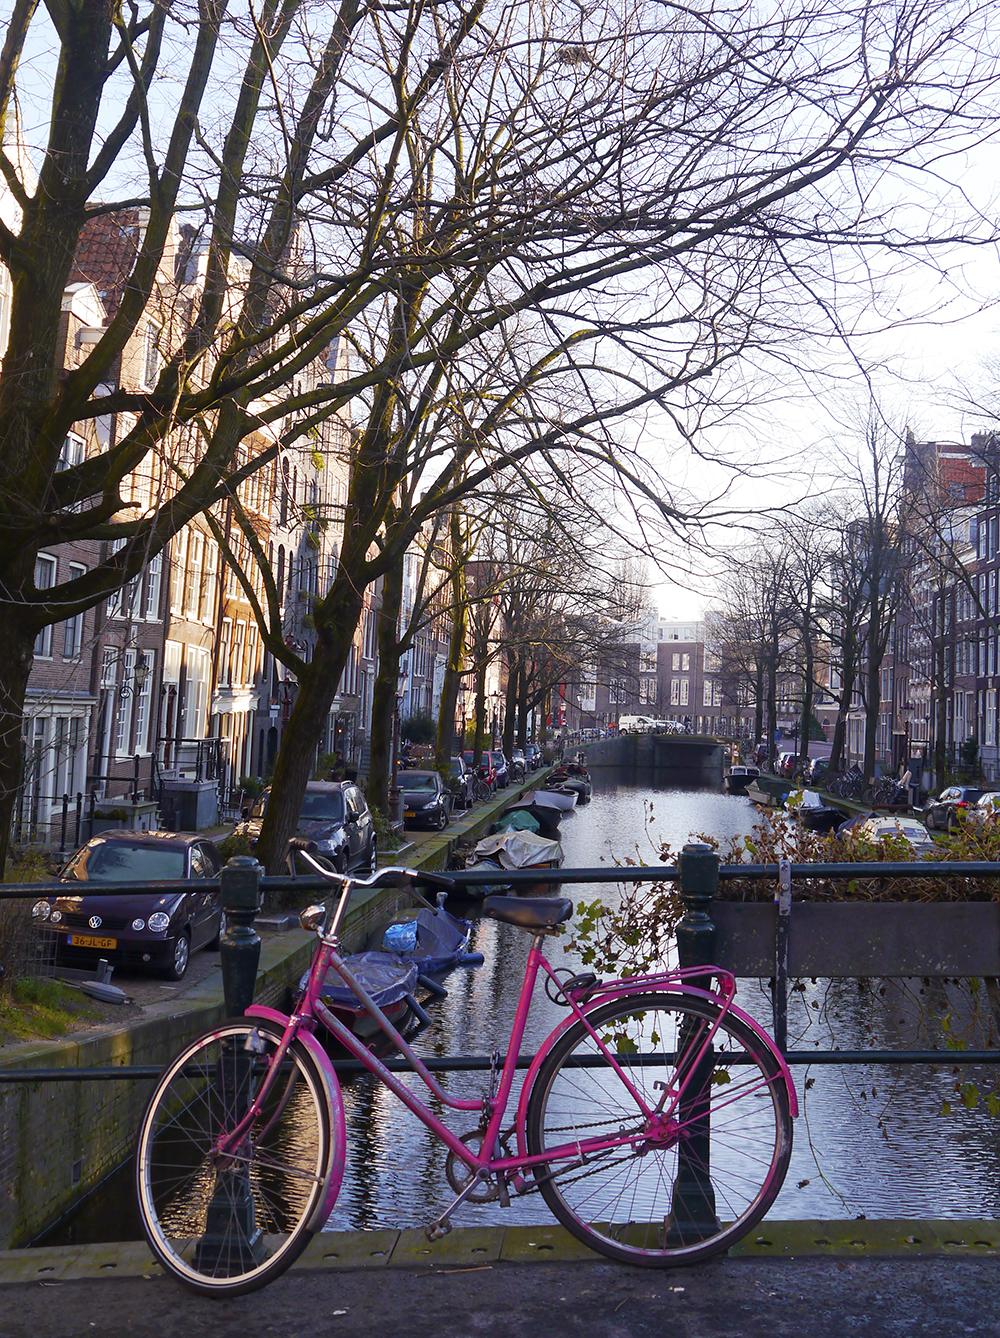 Colourful pink bicycle on an Amsterdam street